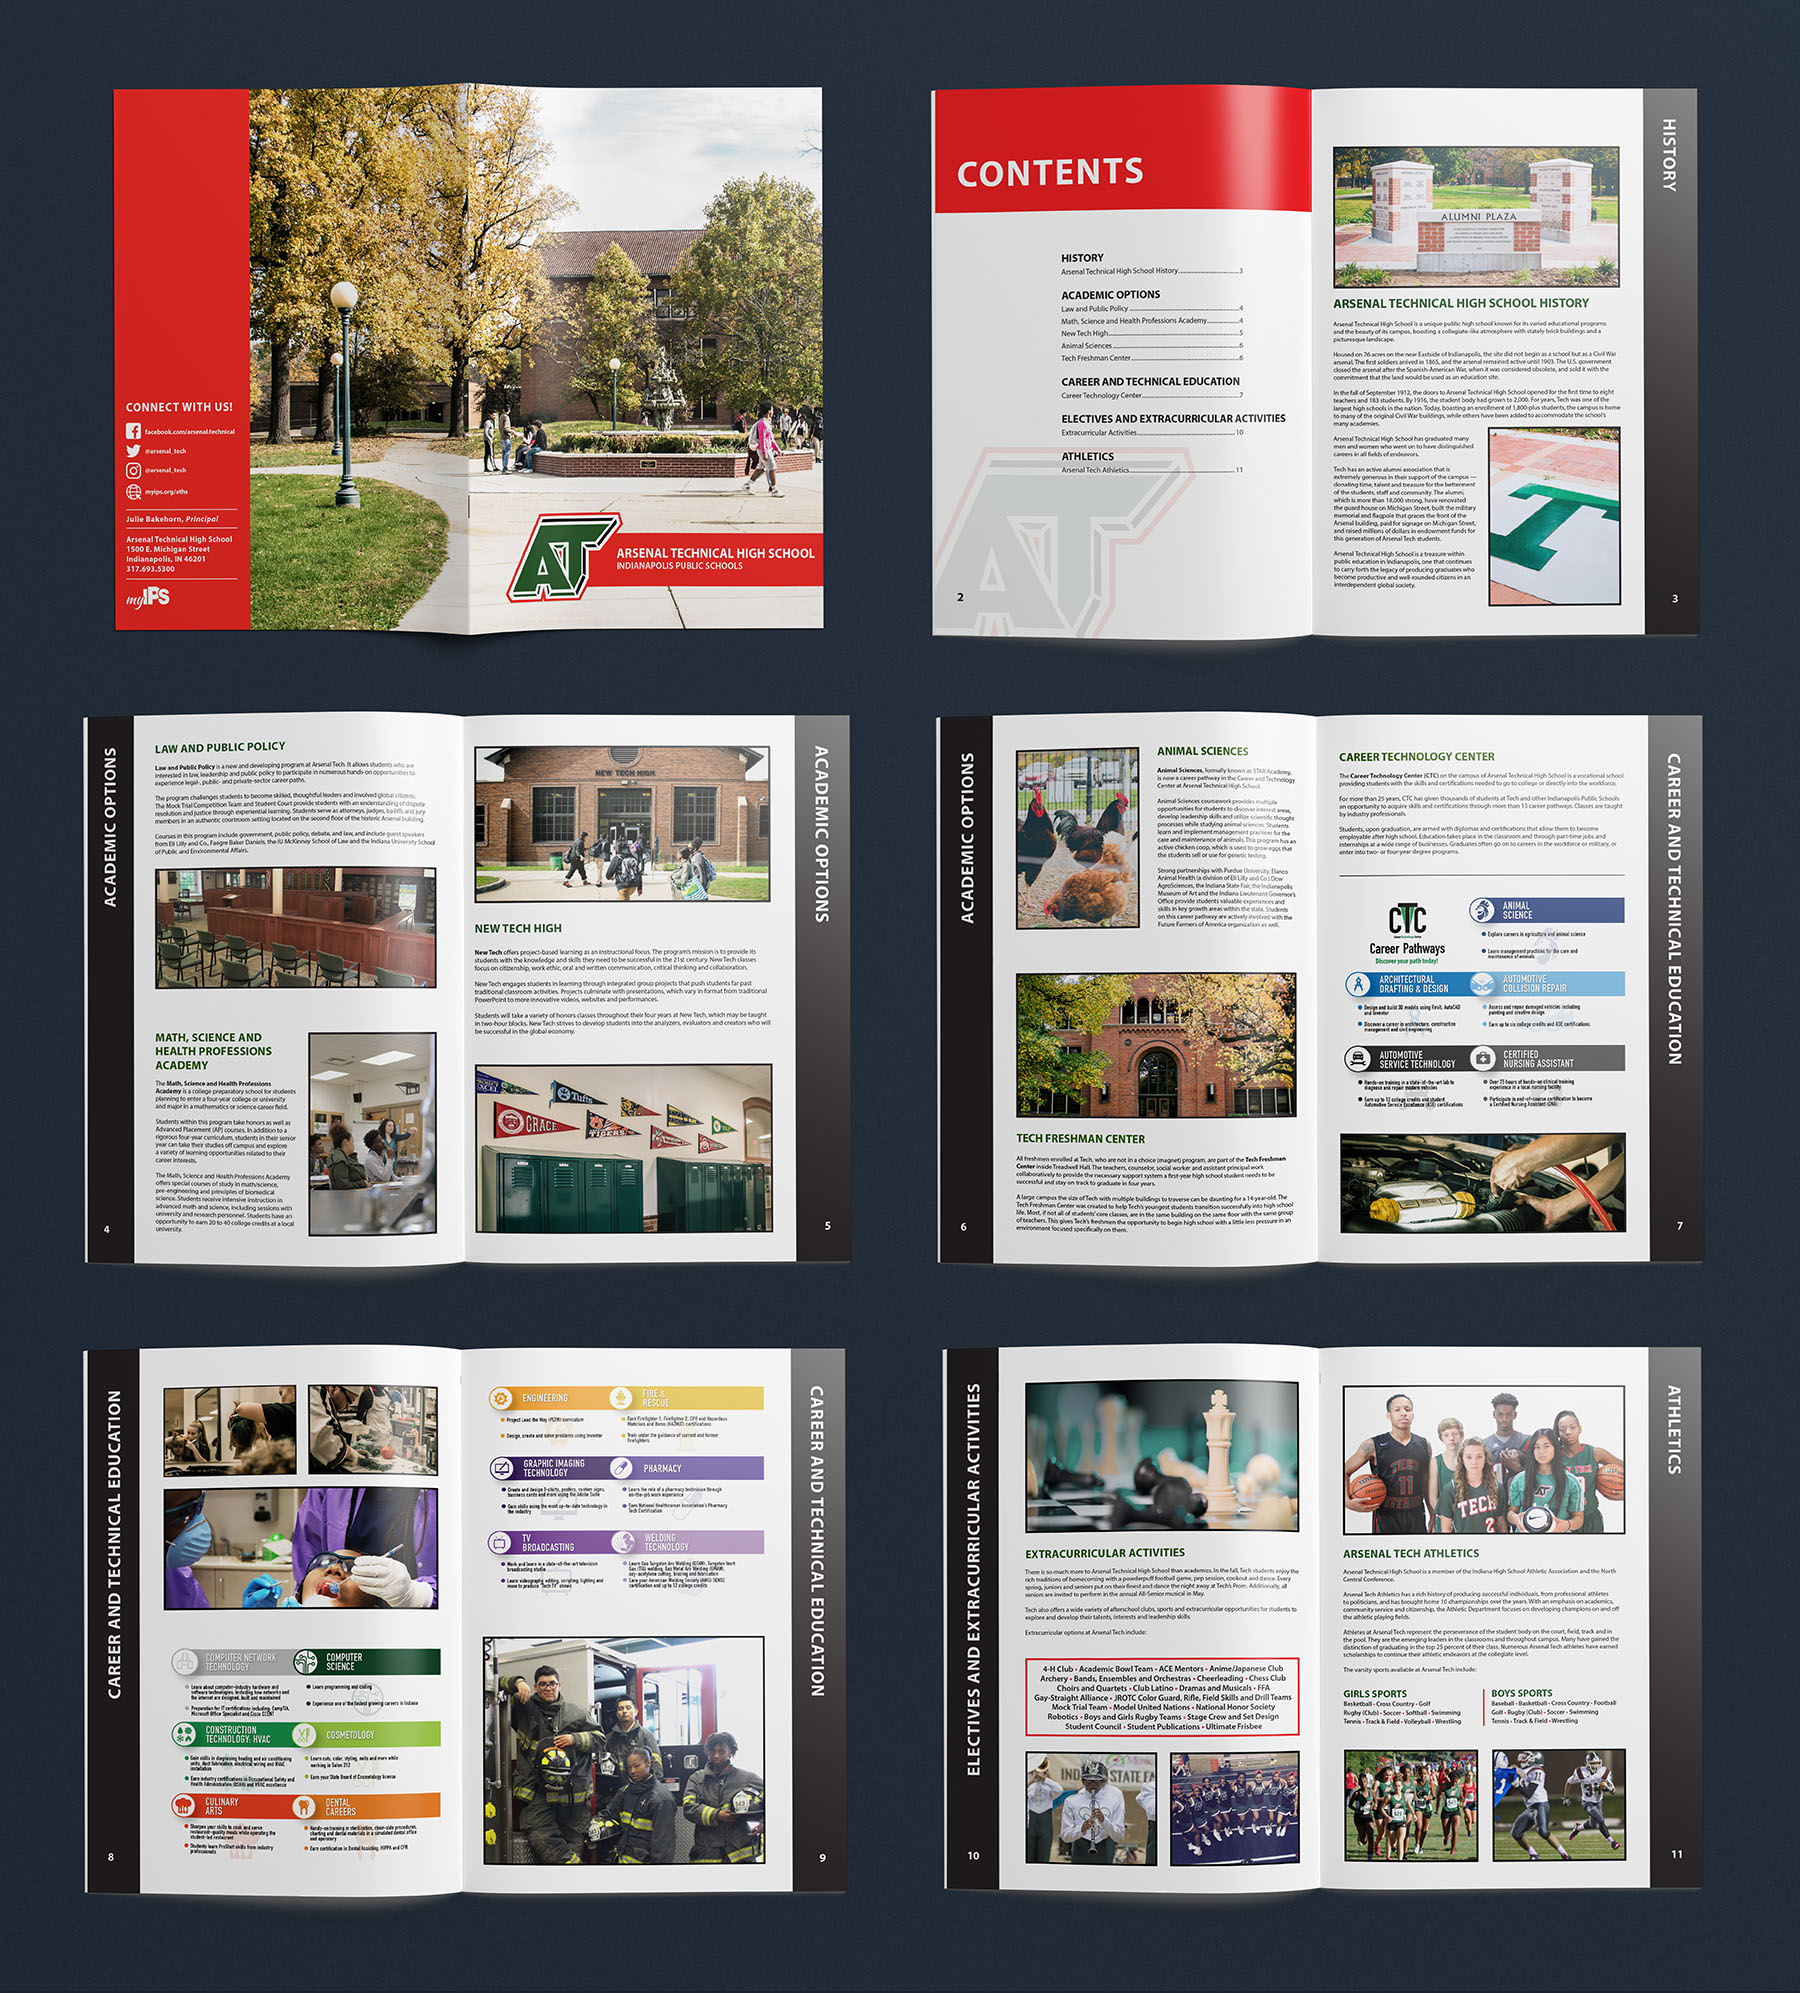 Indianapolis Publice Schools - Arsenal Technical High School Campus Book